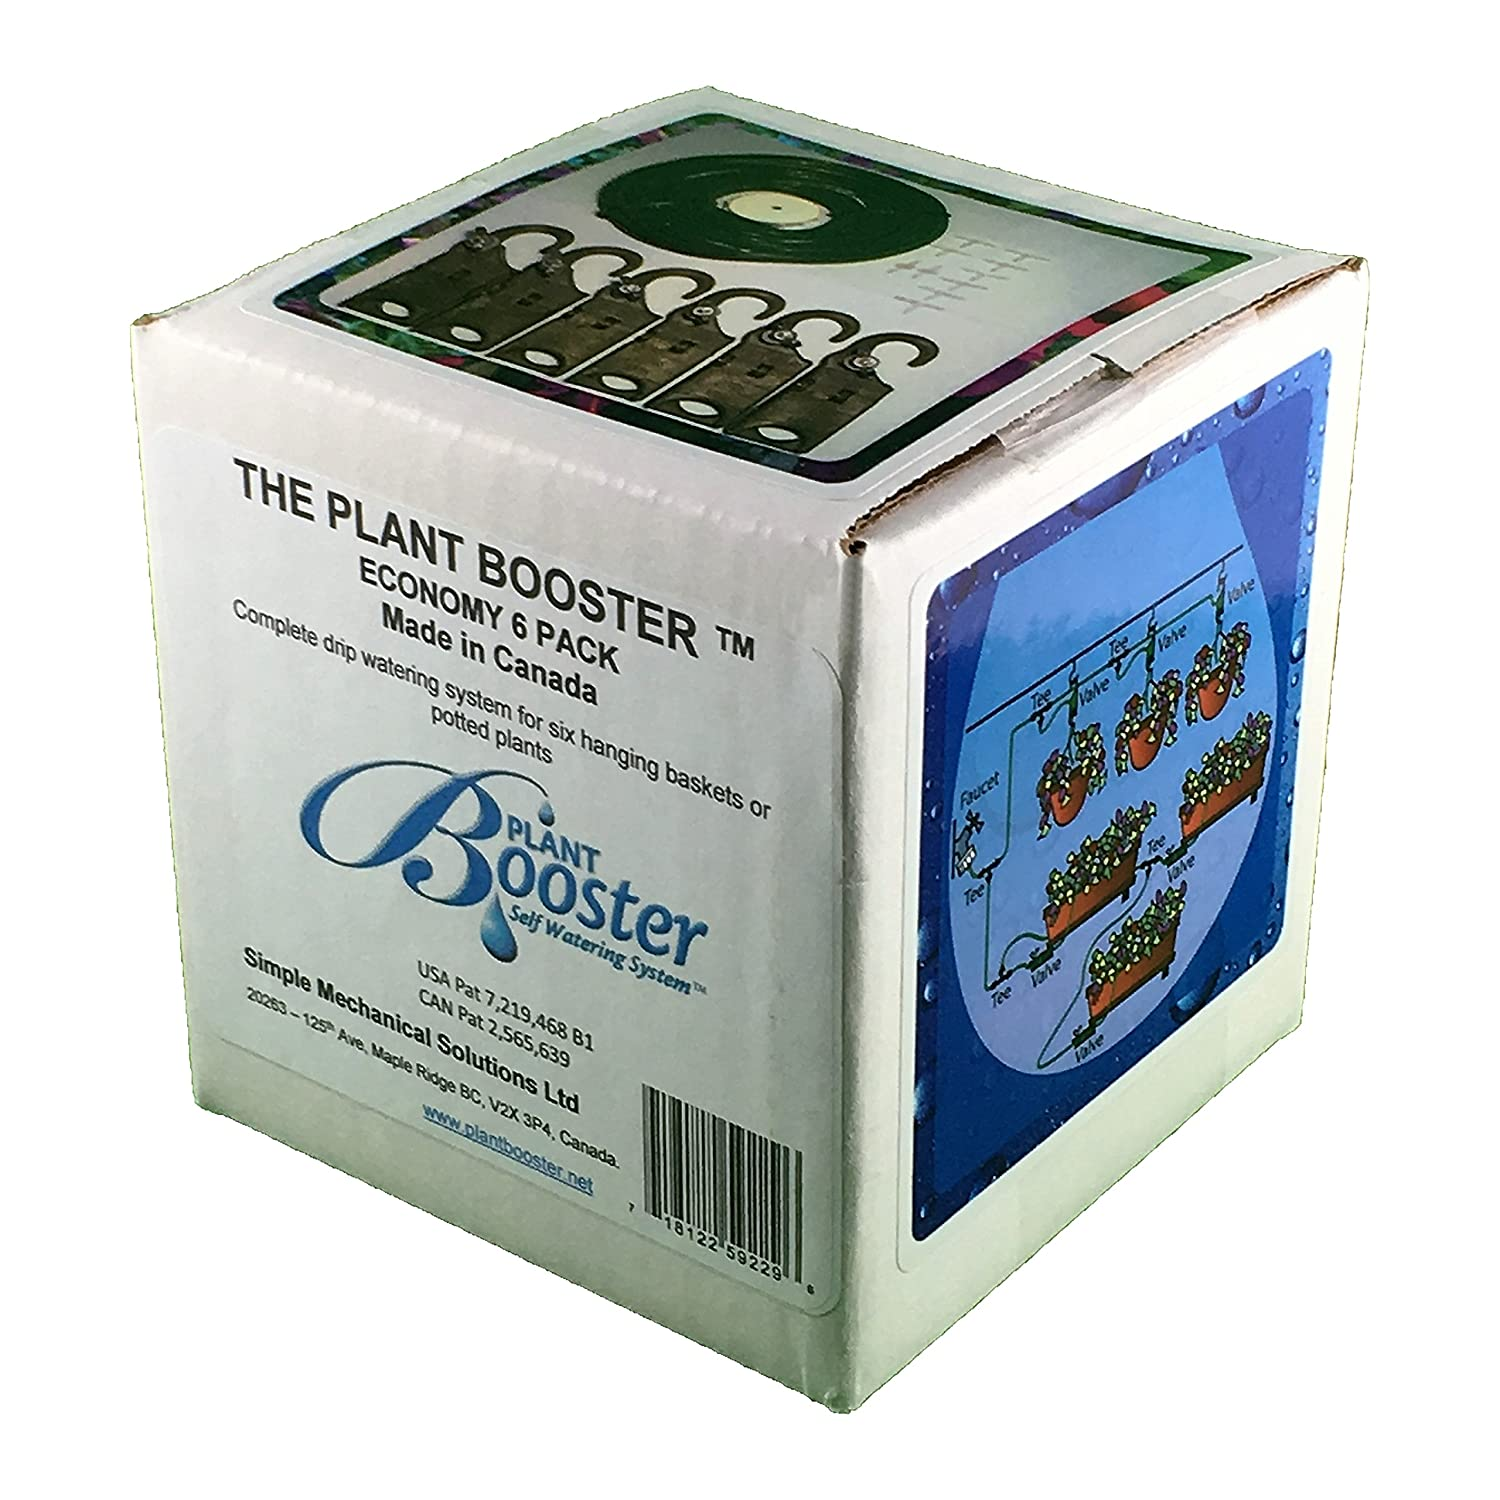 The Plant Booster Economy 6 Pack self-Watering System for 6 Hanging Baskets or planters